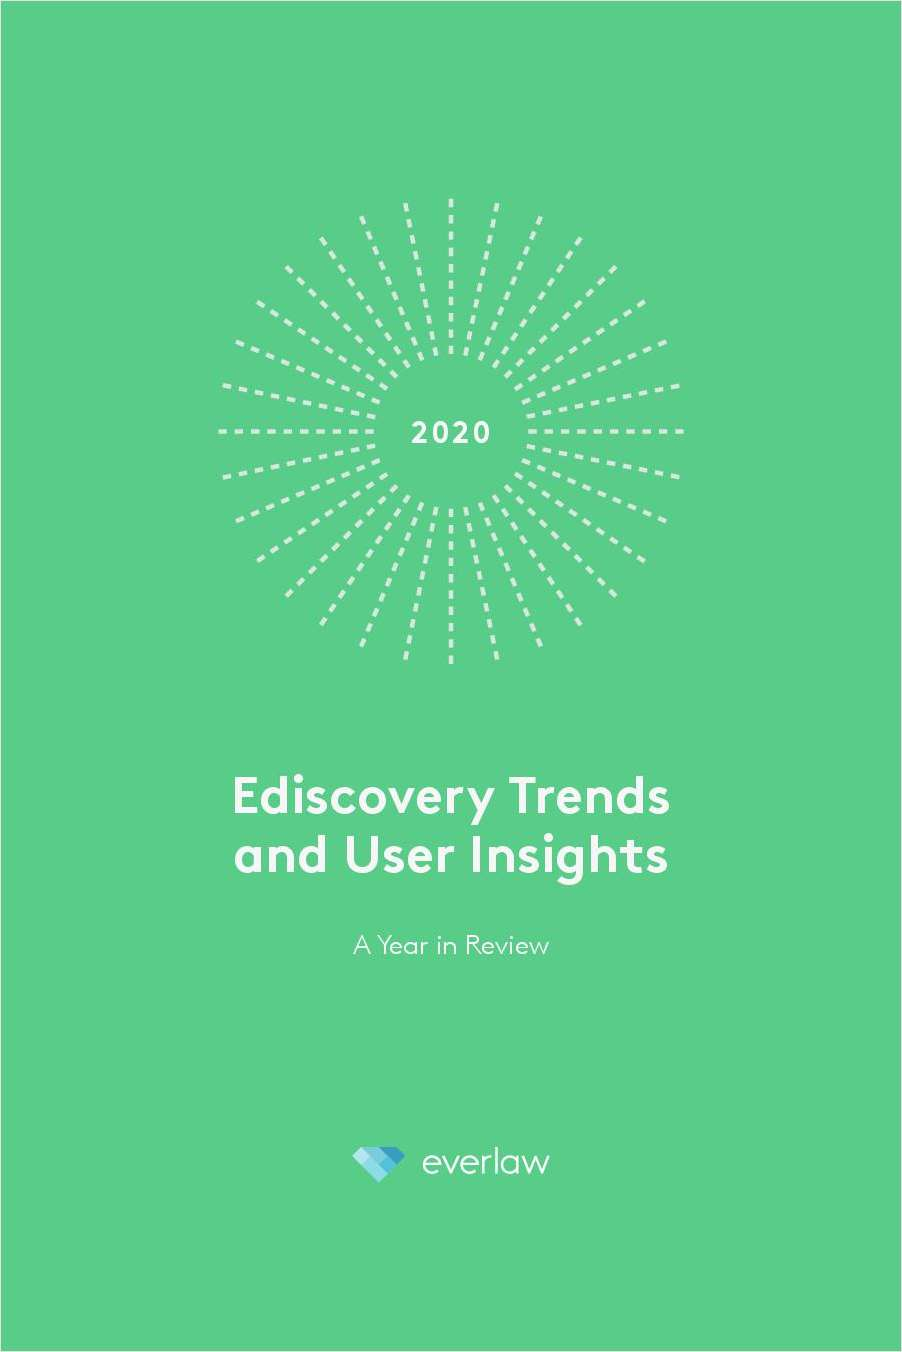 Ediscovery Trends and User Insights - Year in Review